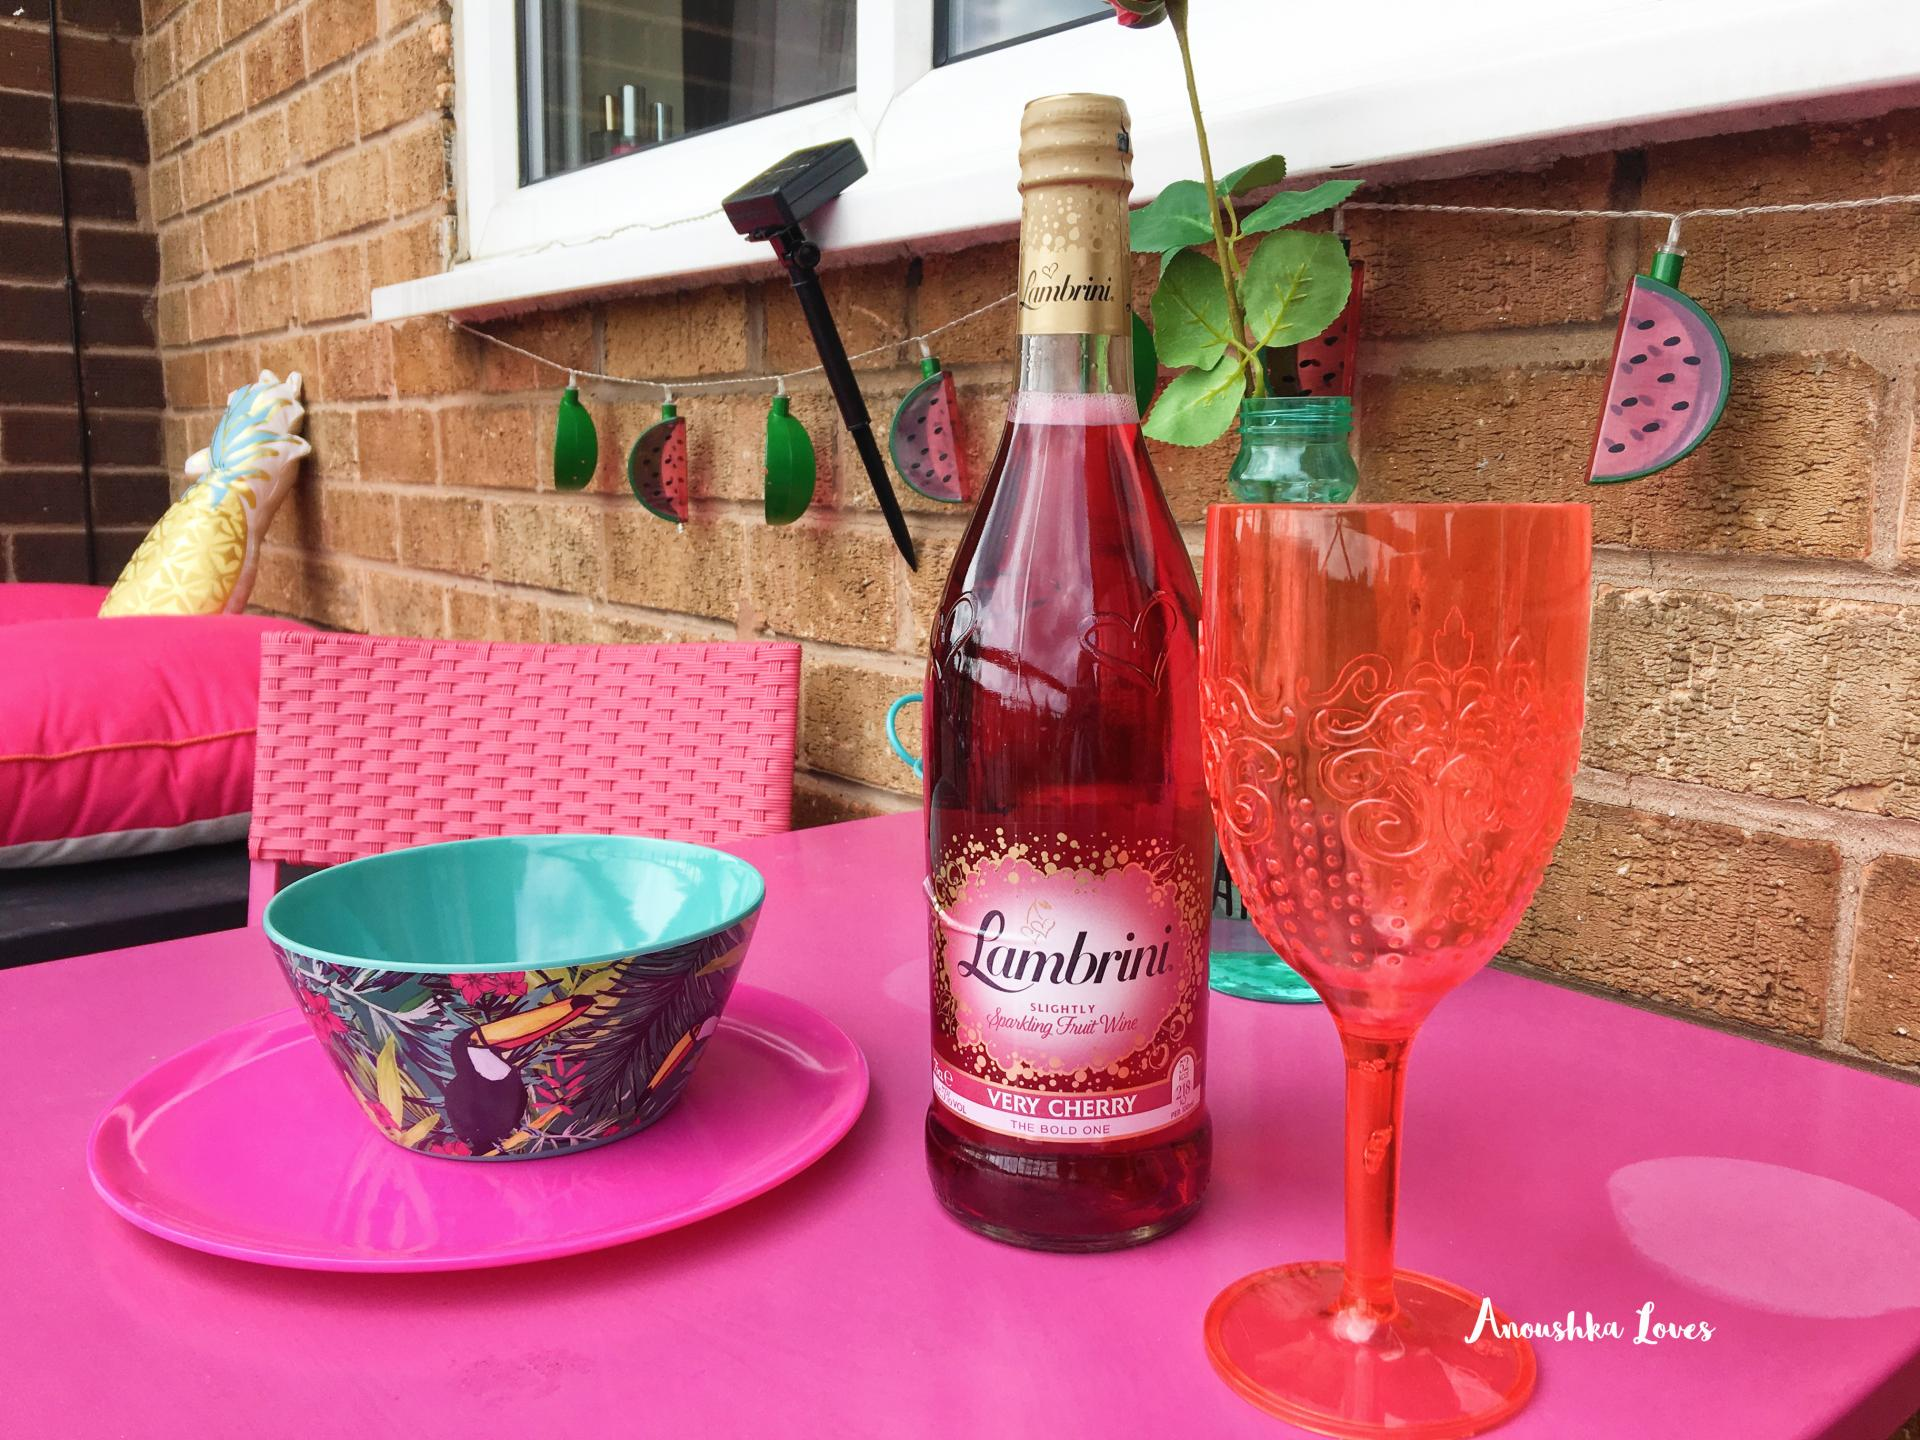 Summer in the City with Lambrini